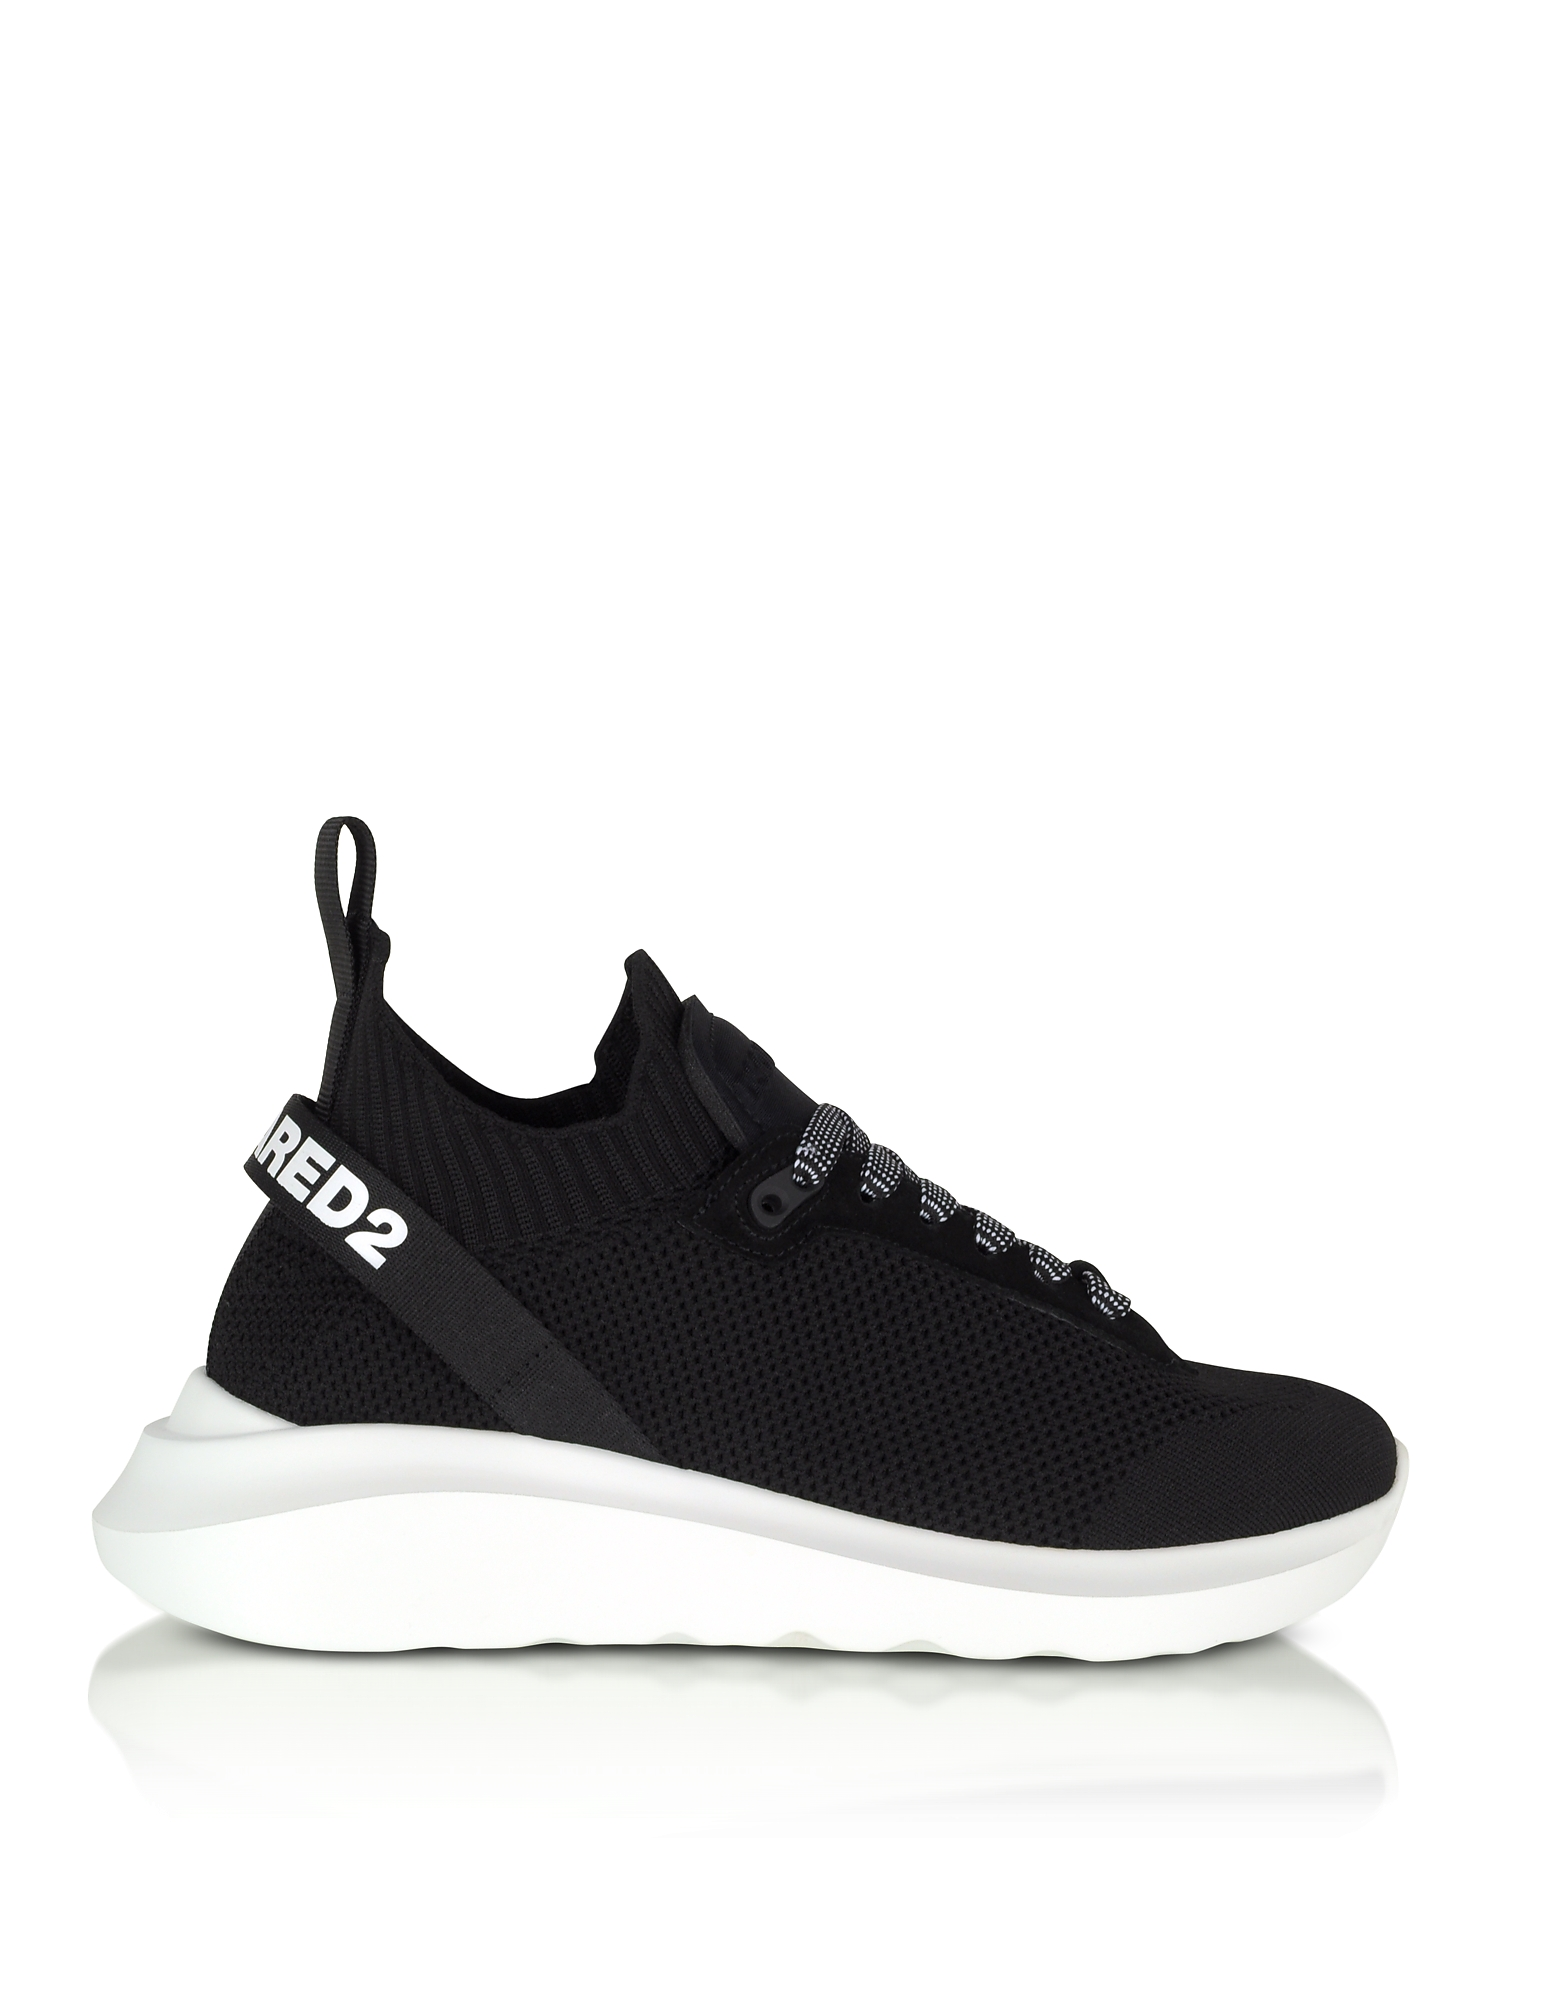 Black Neoprene, Nylon and Leather Men's Sneakers